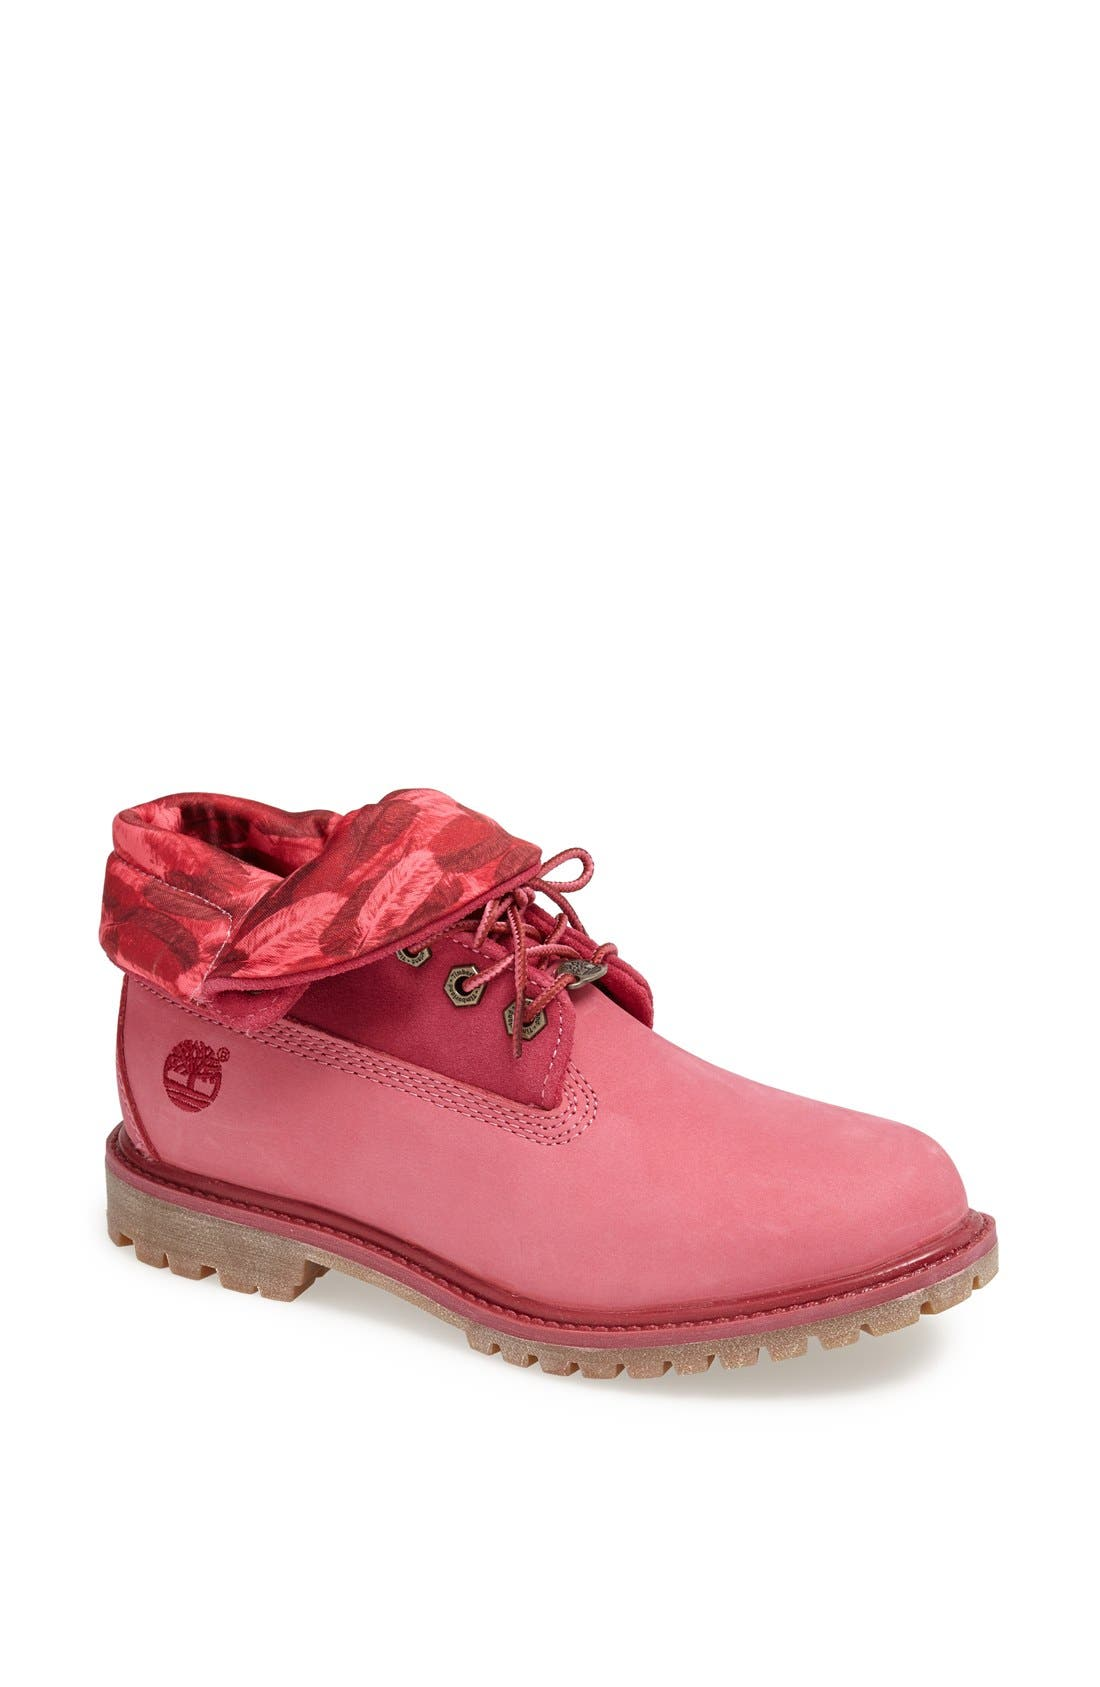 Alternate Image 1 Selected - Timberland 'Authentic' Roll Top Boot